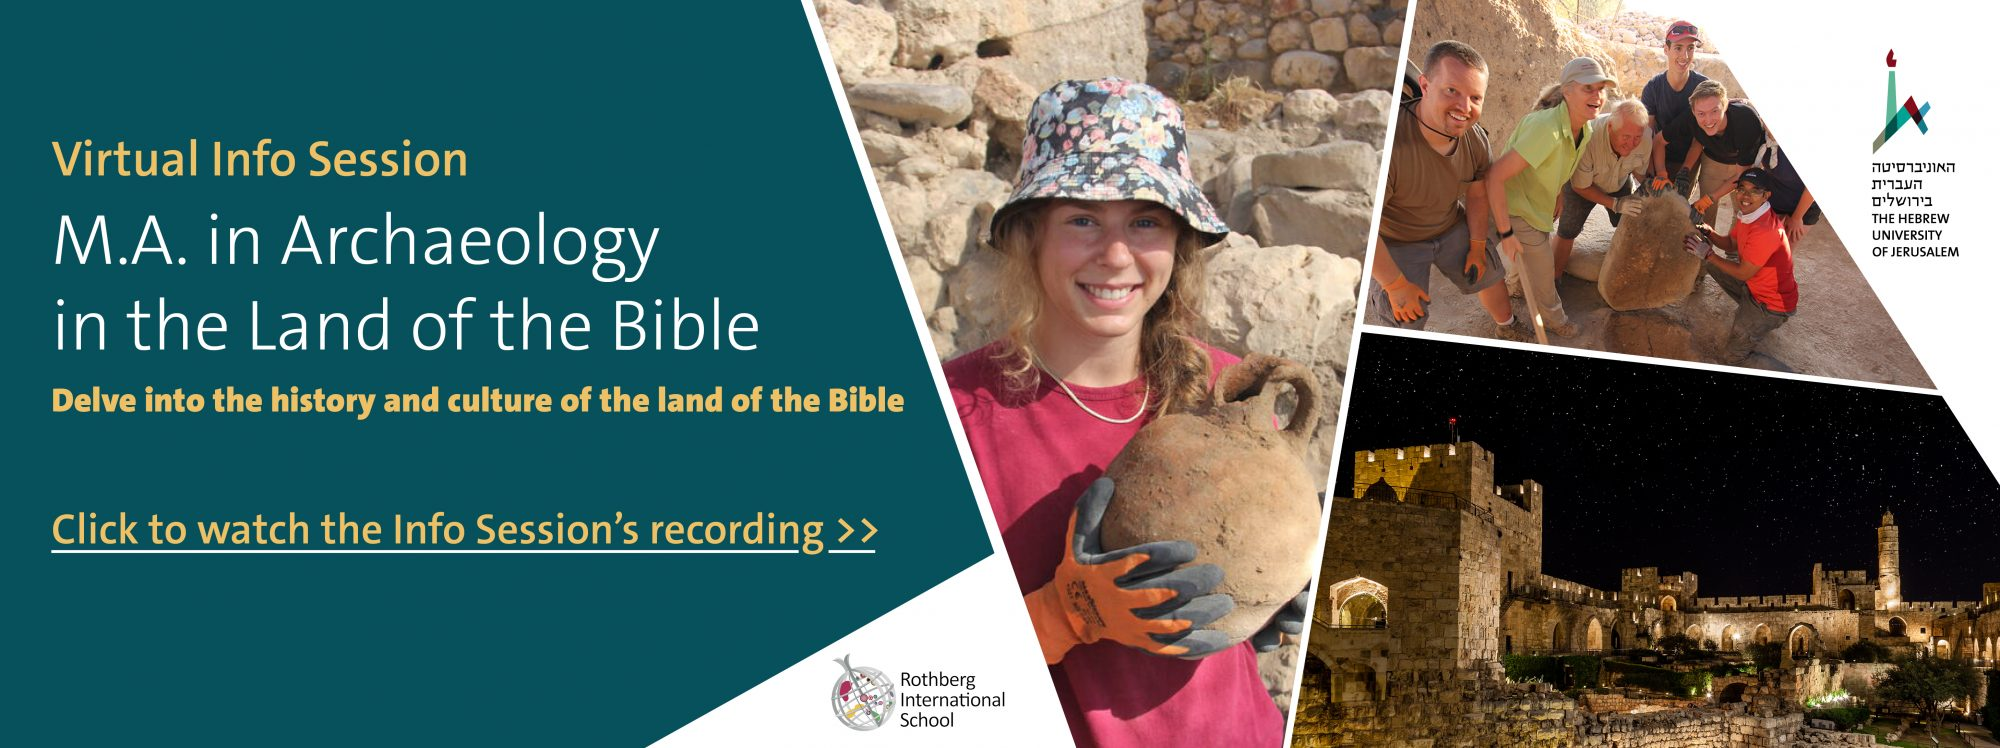 M.A. in Archaeology in the Land of the Bible